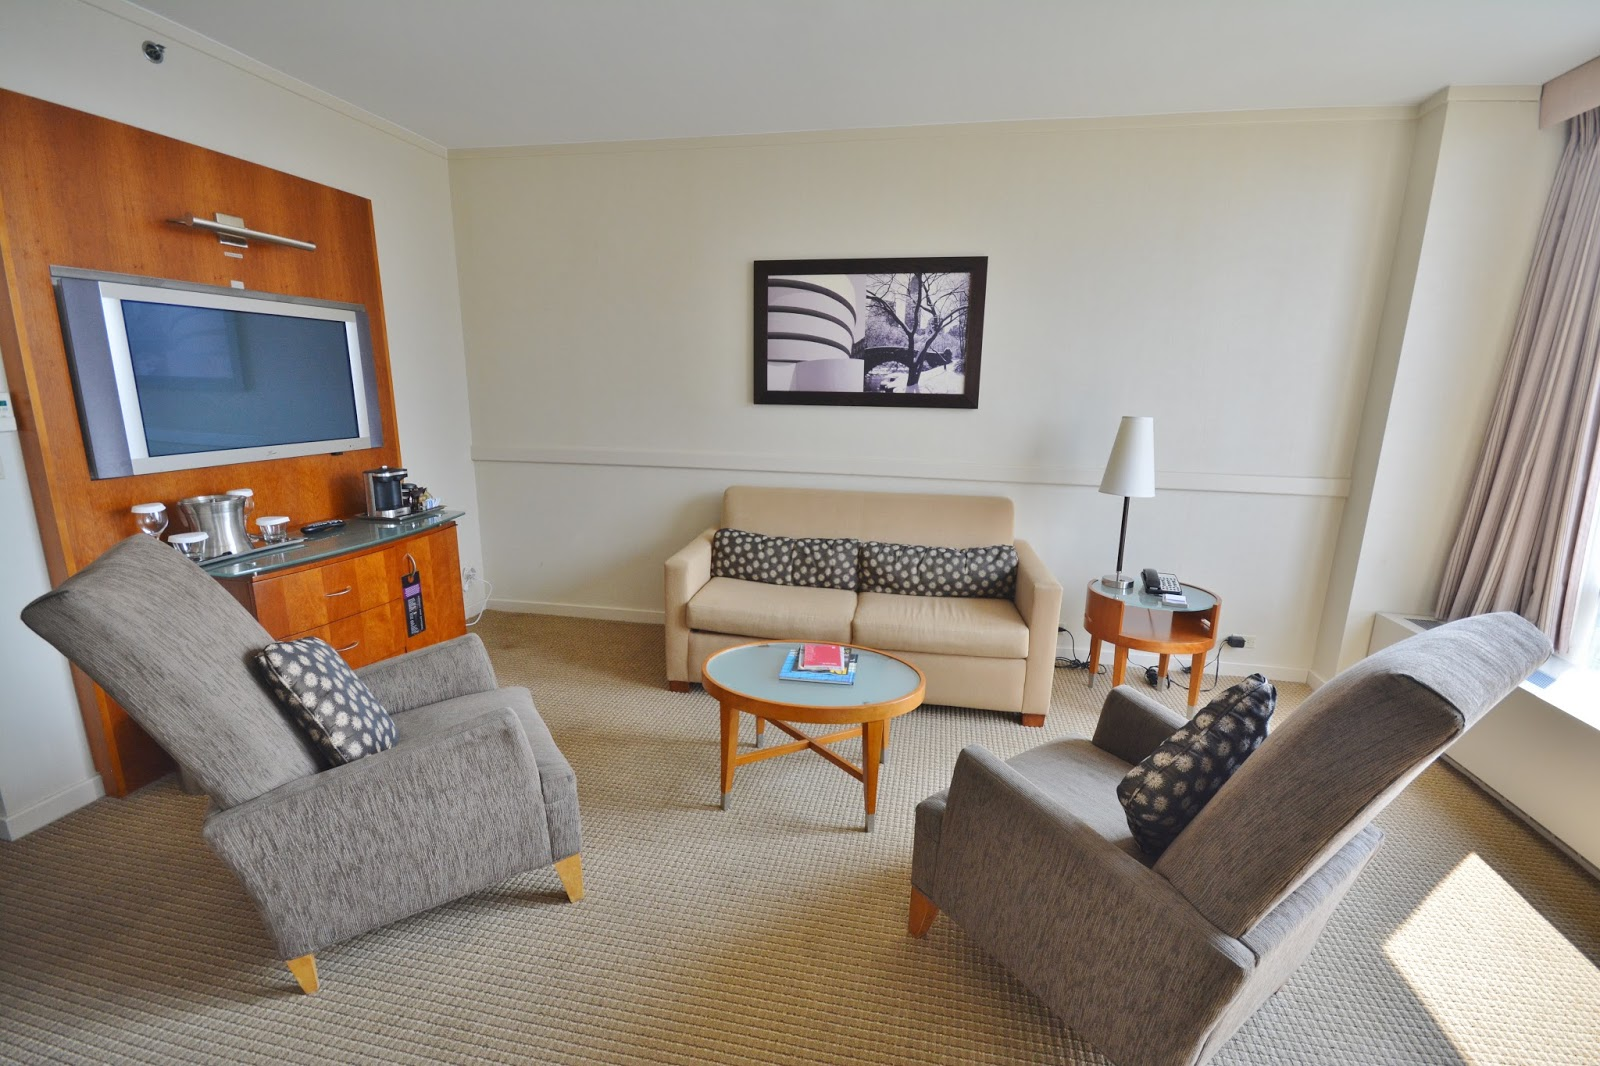 New York 2 Bedroom Suites Life With 4 Boys Where To Stay With Kids In New York City